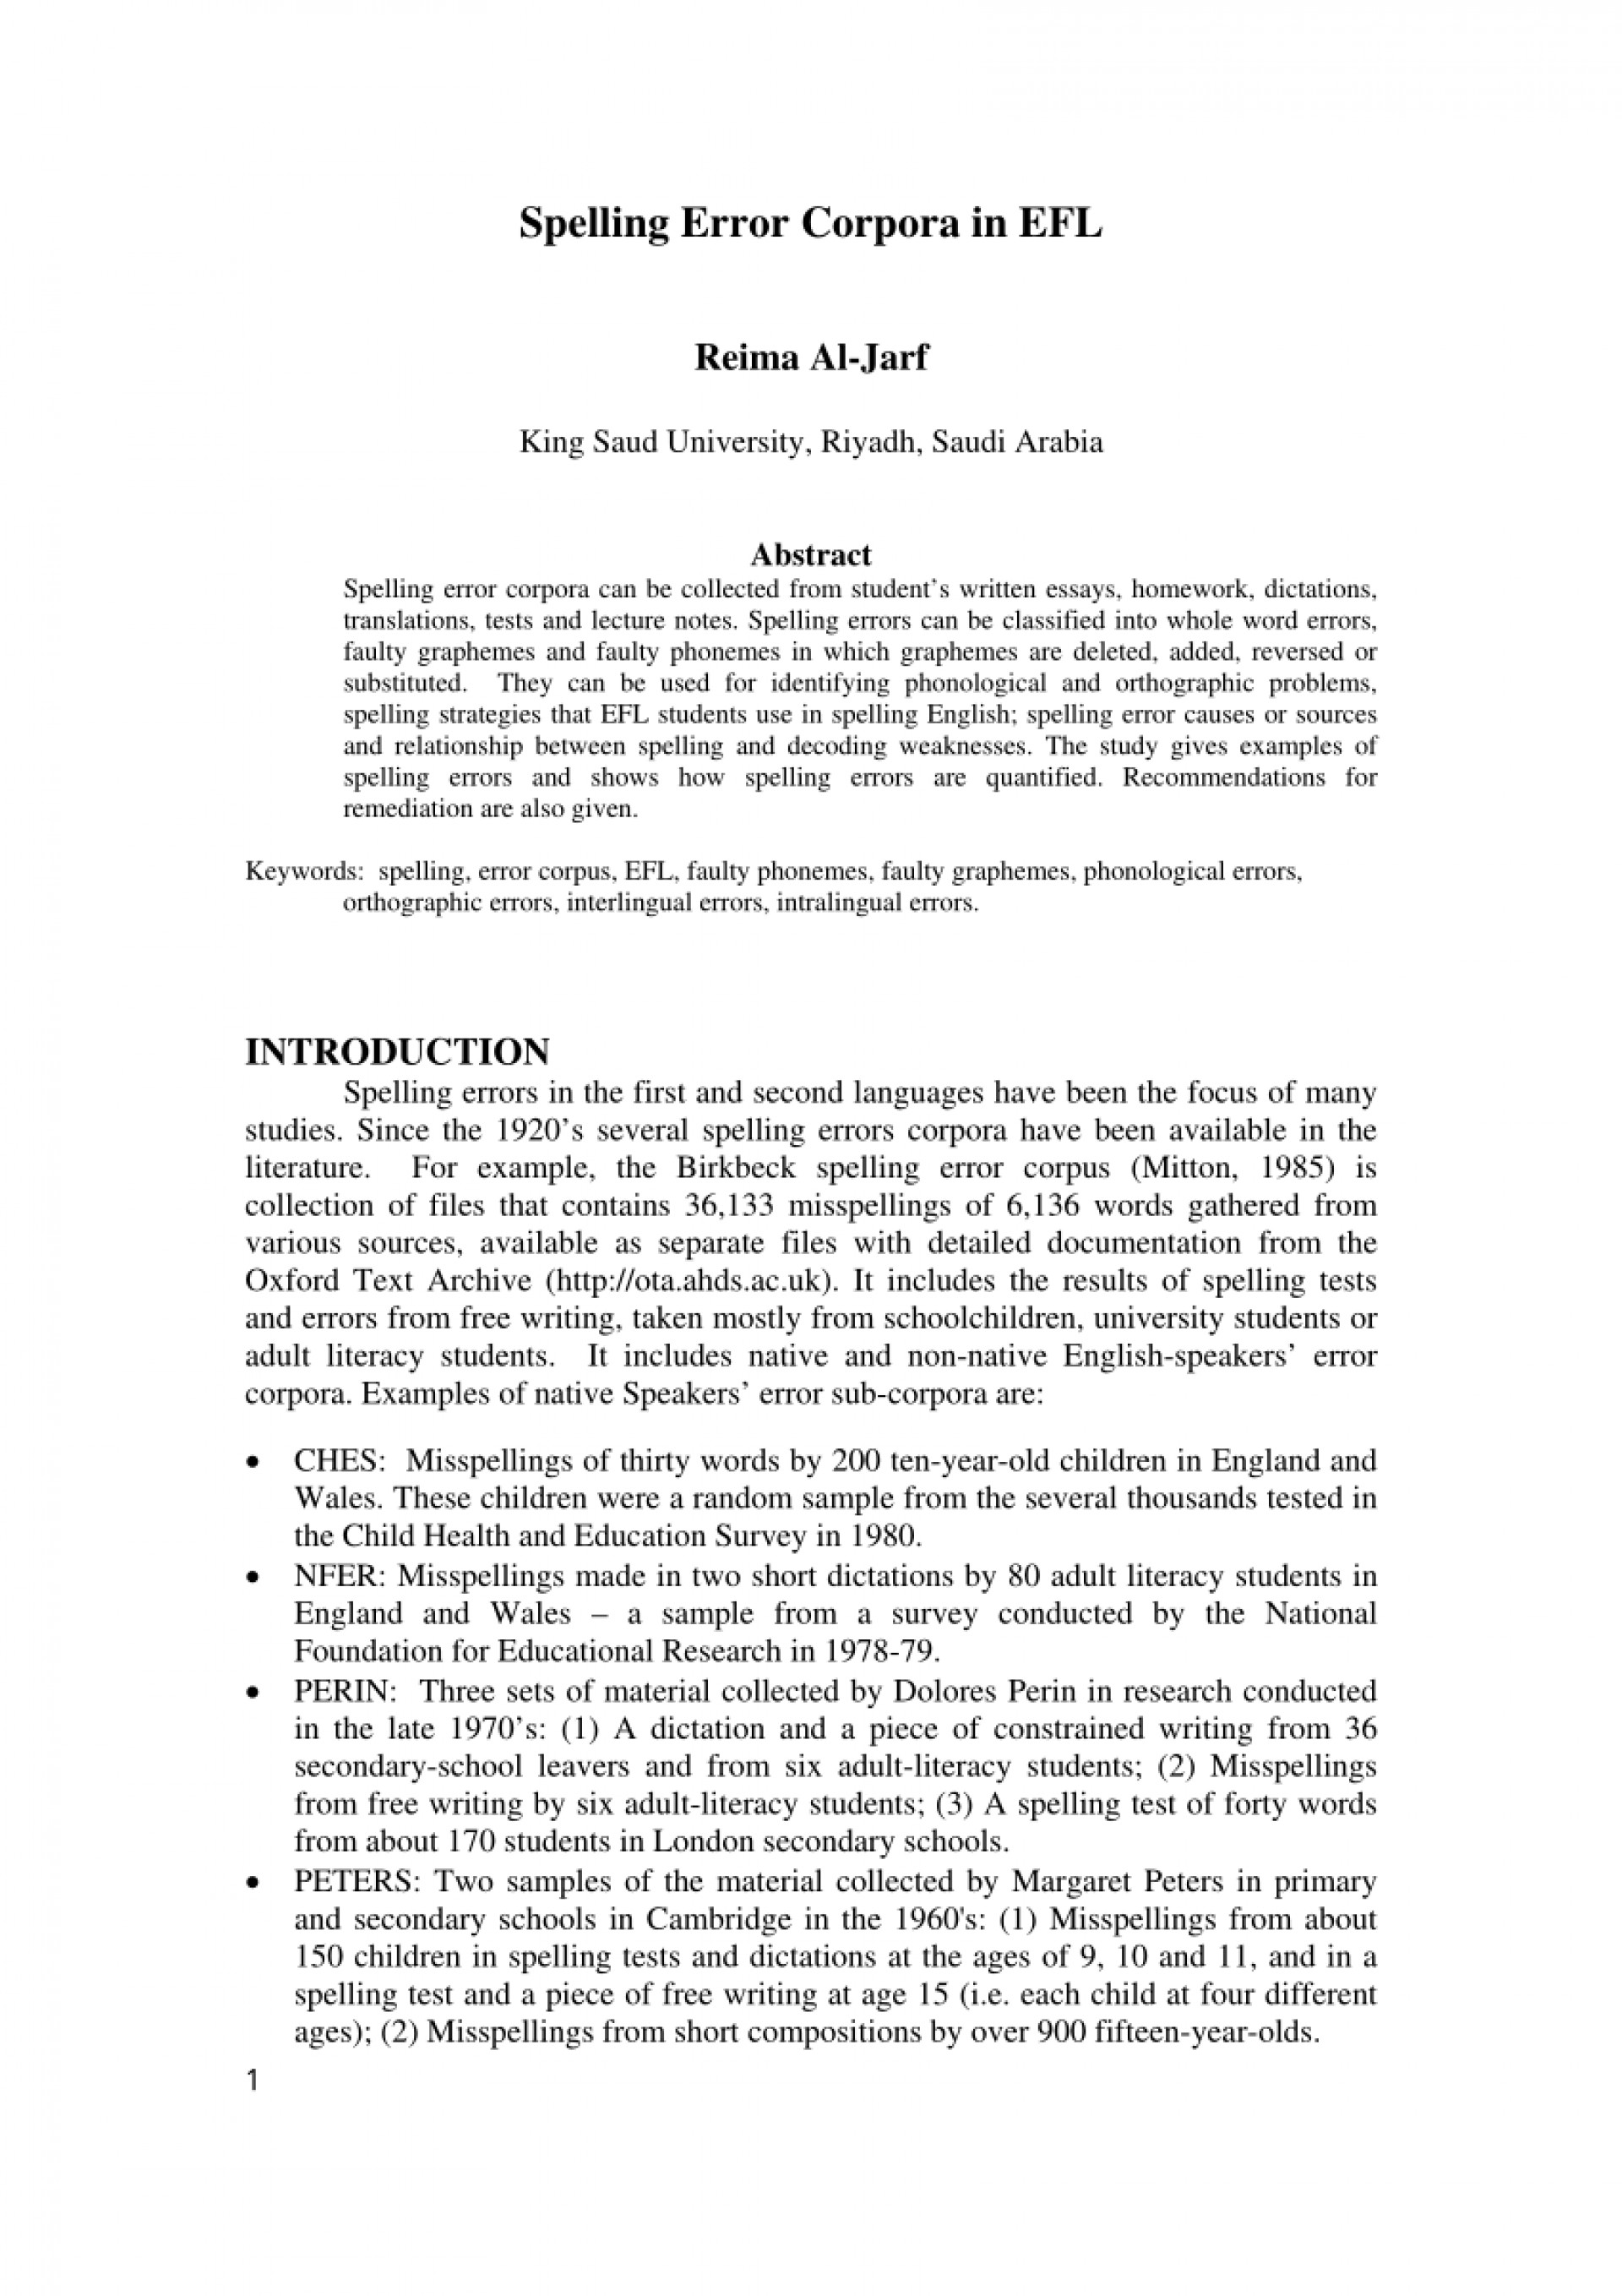 024 Essay Example Largepreview How Do You Beautiful Spell U In English Plural 1920